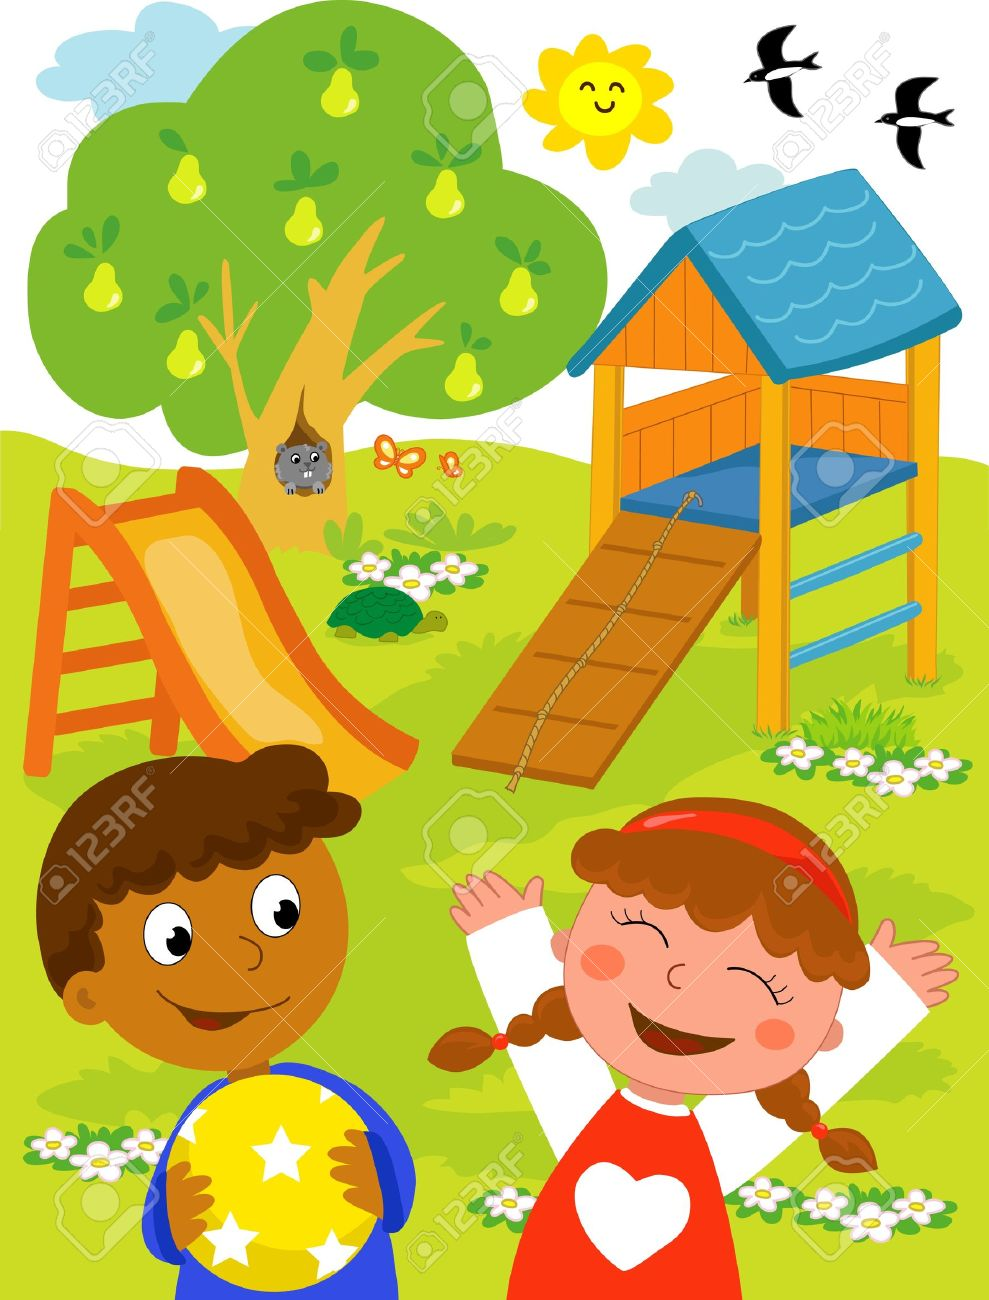 Playground Cartoon Illustration Of A Black Boy And Caucasian Girl Playing Together At The